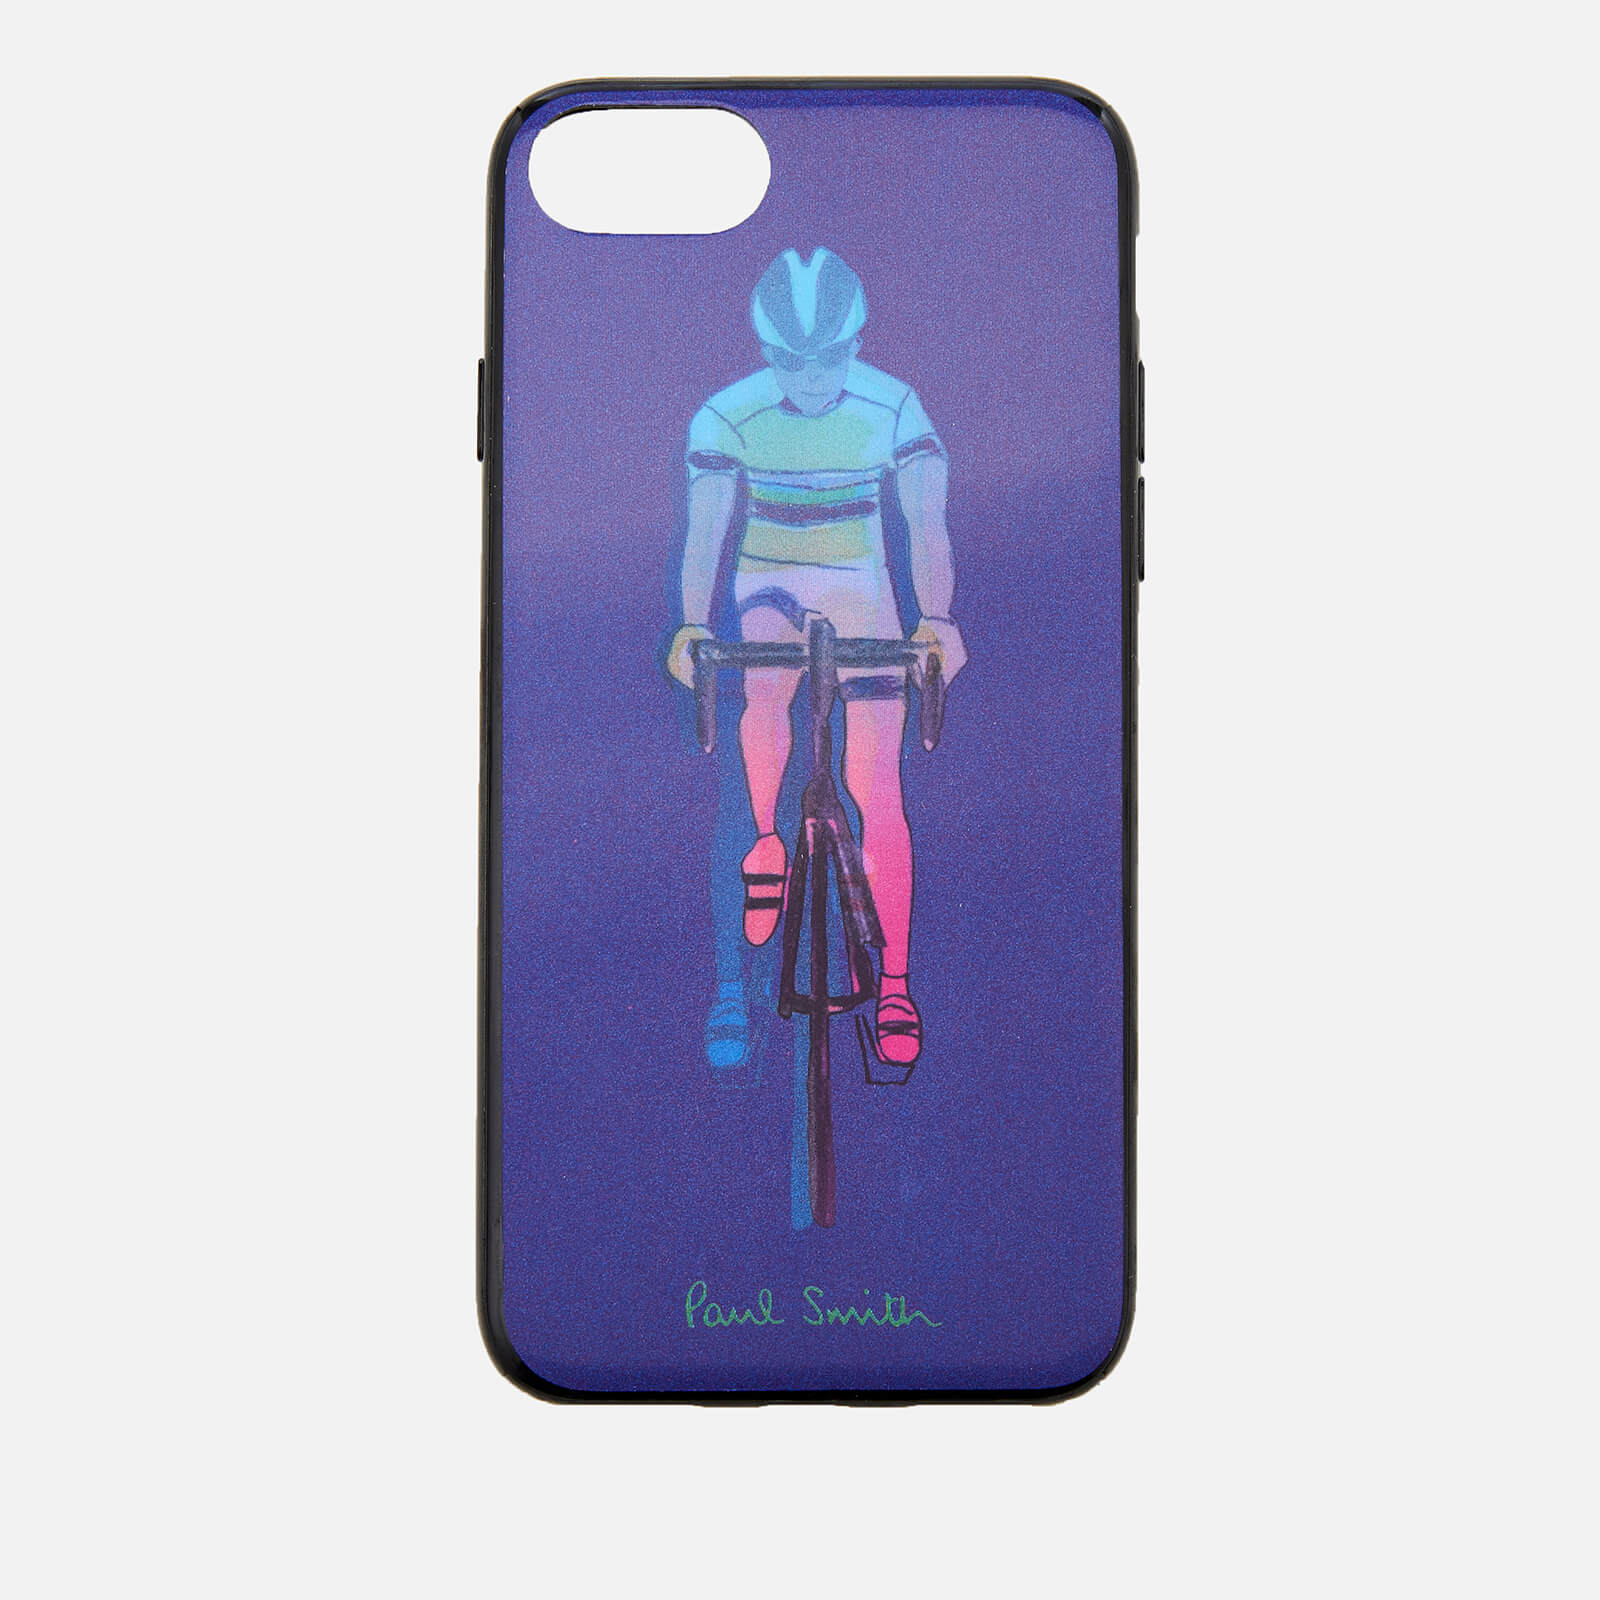 new styles 775f1 00d6e Paul Smith Men's Cycling iPhone 8 Case - Purple